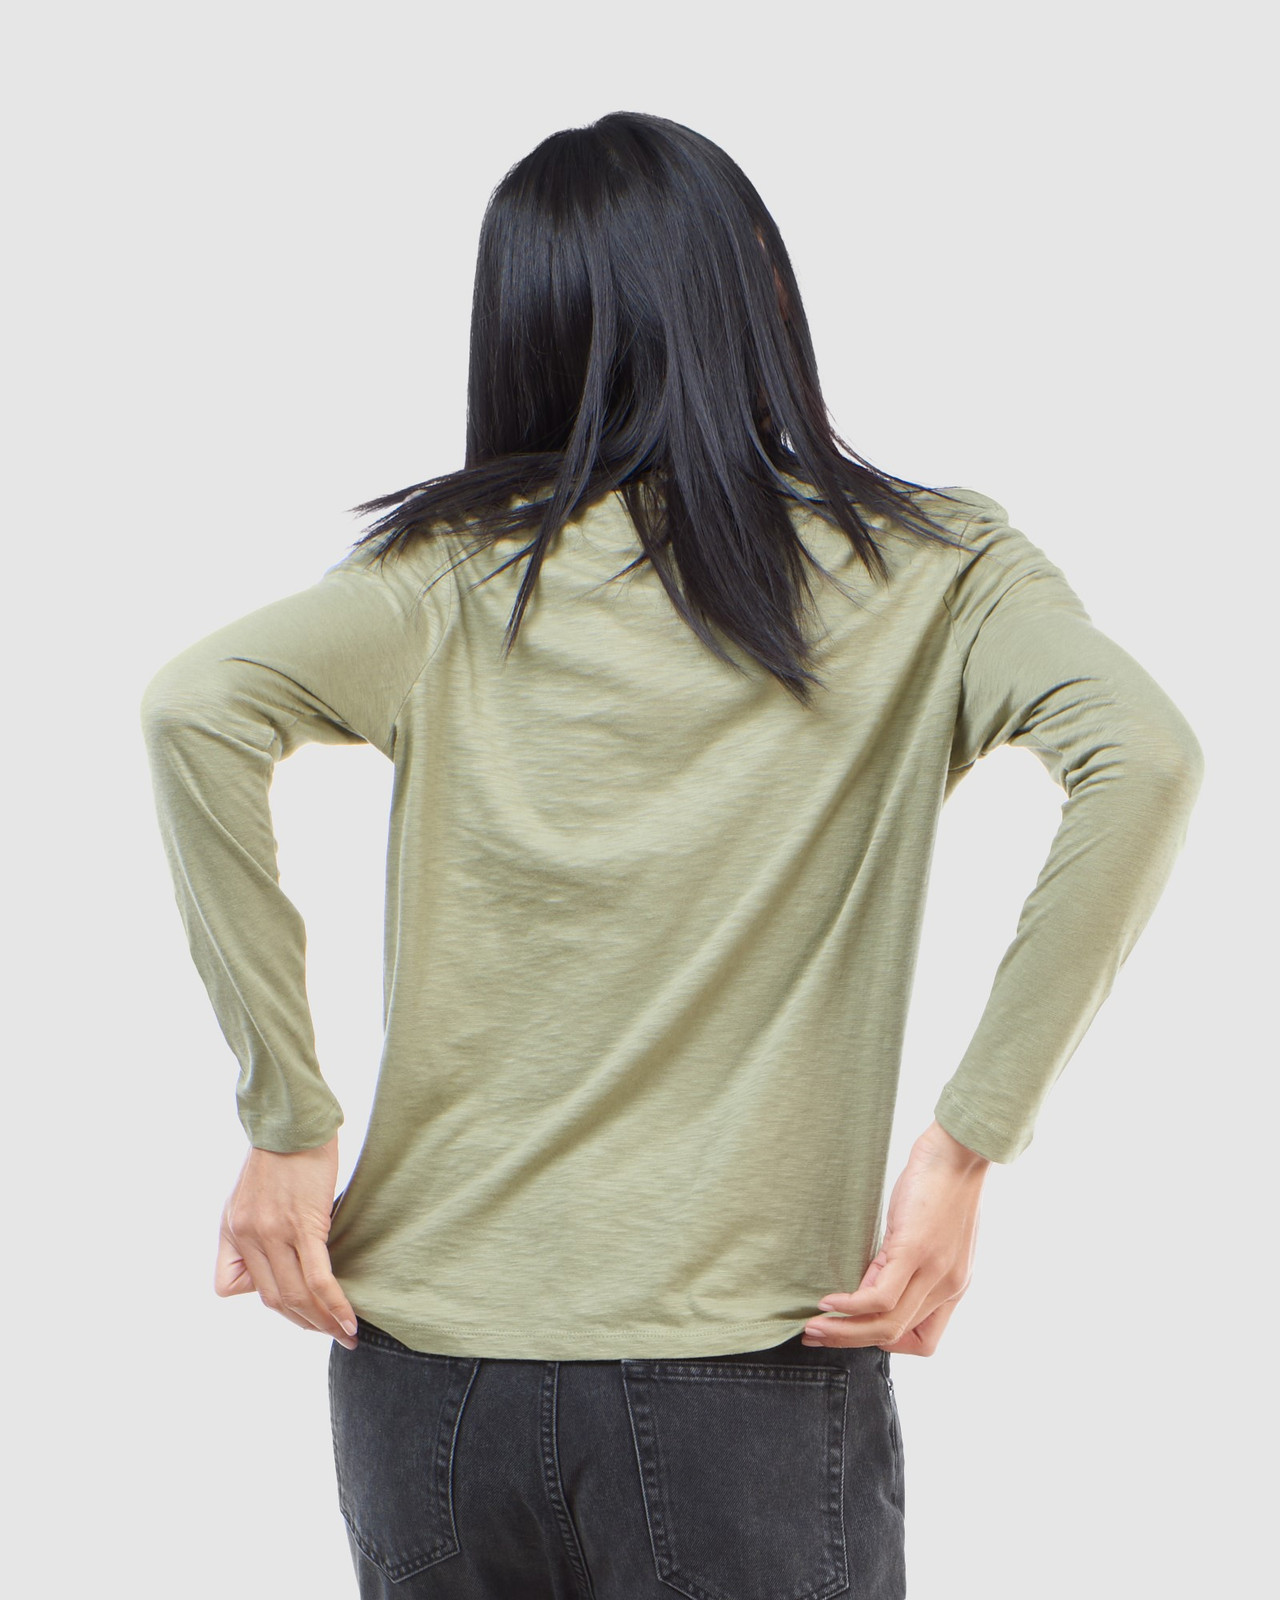 Superdry Womens SCRIPTED L/S CREW TOP Green Long Sleeve Top 4